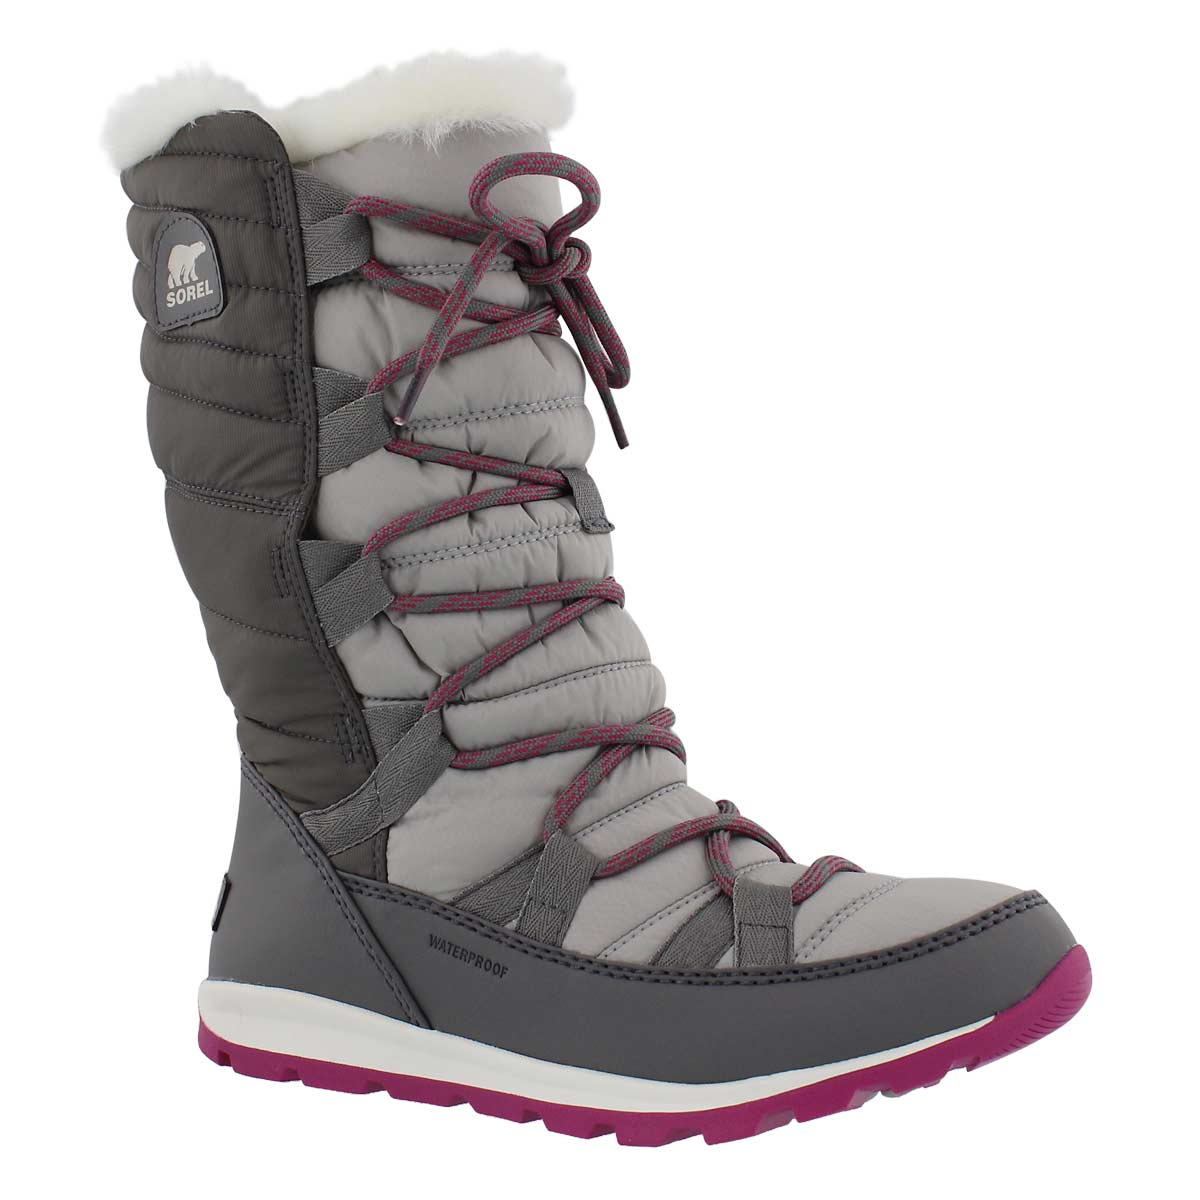 Women's WHITNEY LACE quarry wtrp winter boots